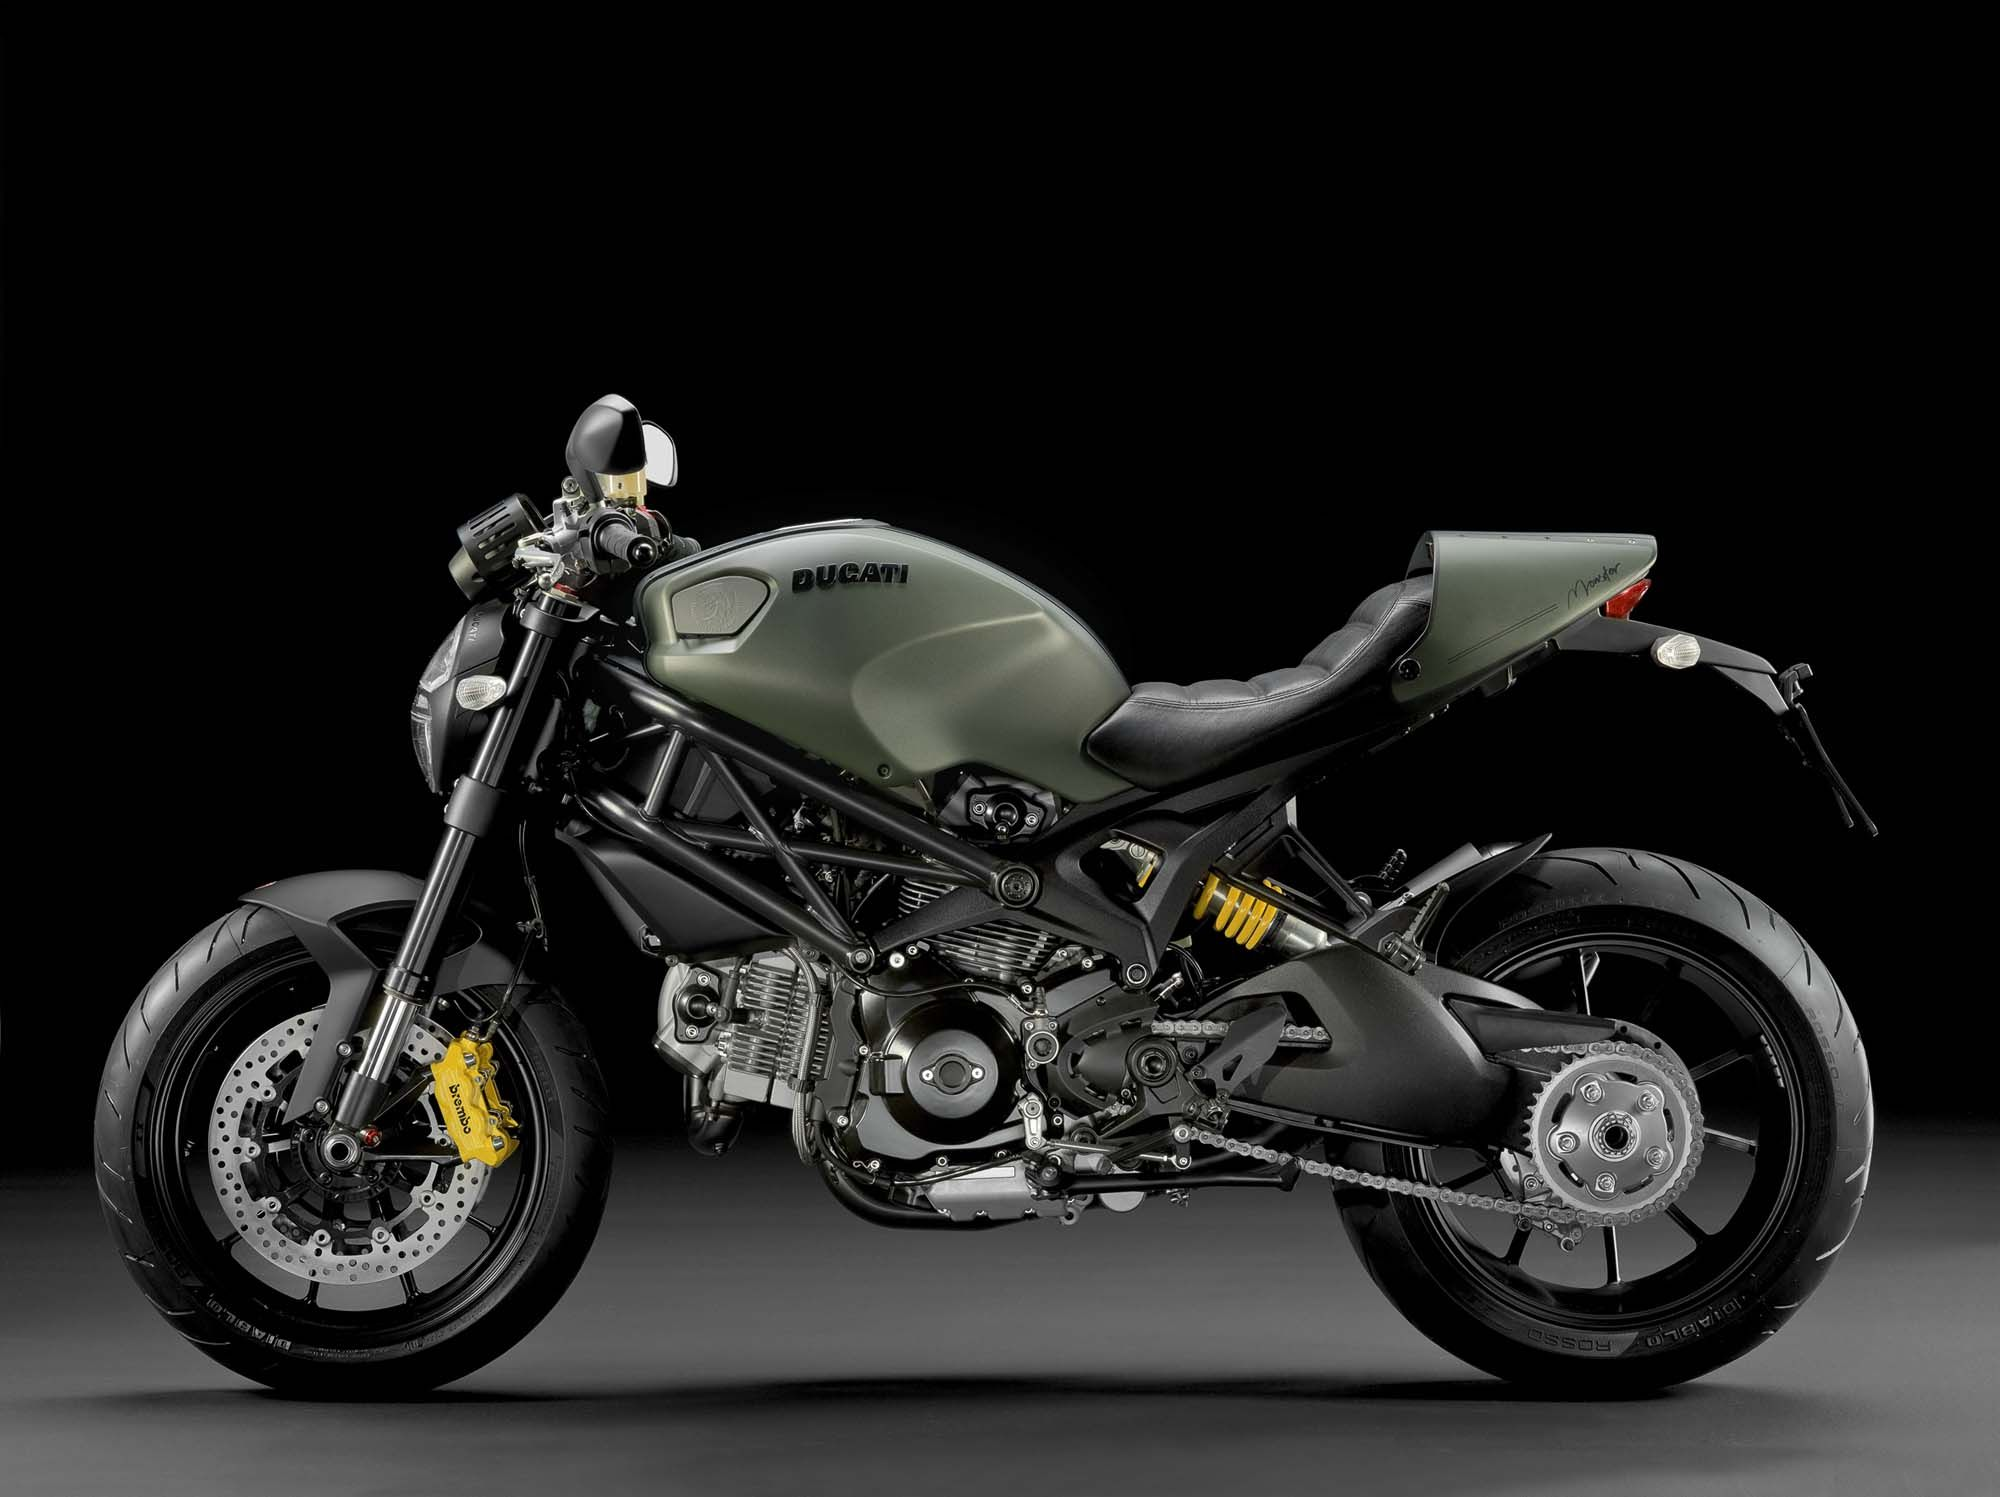 Google Image Result for http://www.unfinishedman.com/wp-content/uploads/2012/03/Ducati-Monster-Diesel-3.jpg